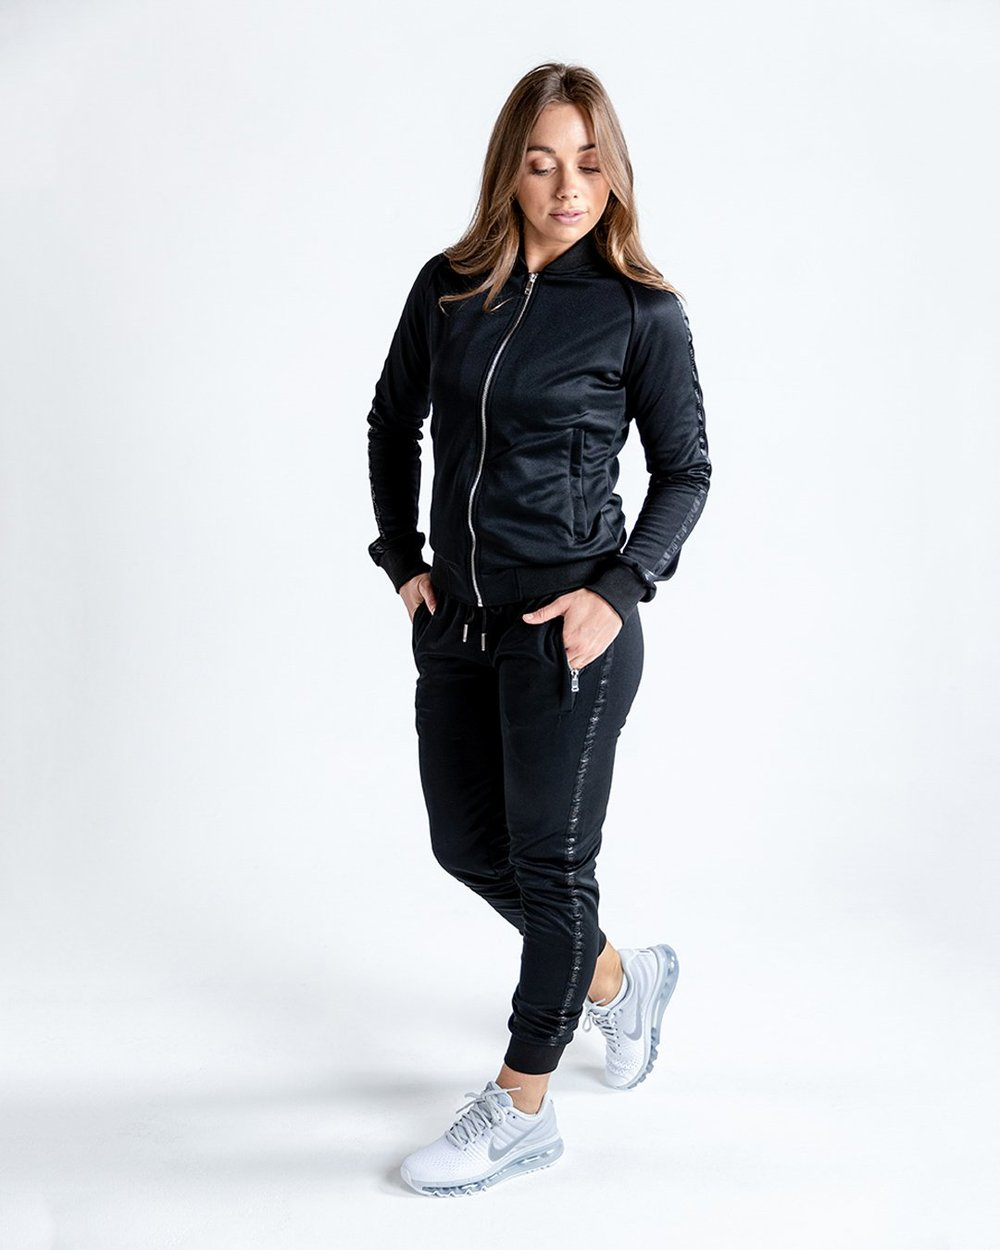 WOMEN'S WHITAKER BOTTOMS - BLACK - Pandemic Fight Gear Inc.